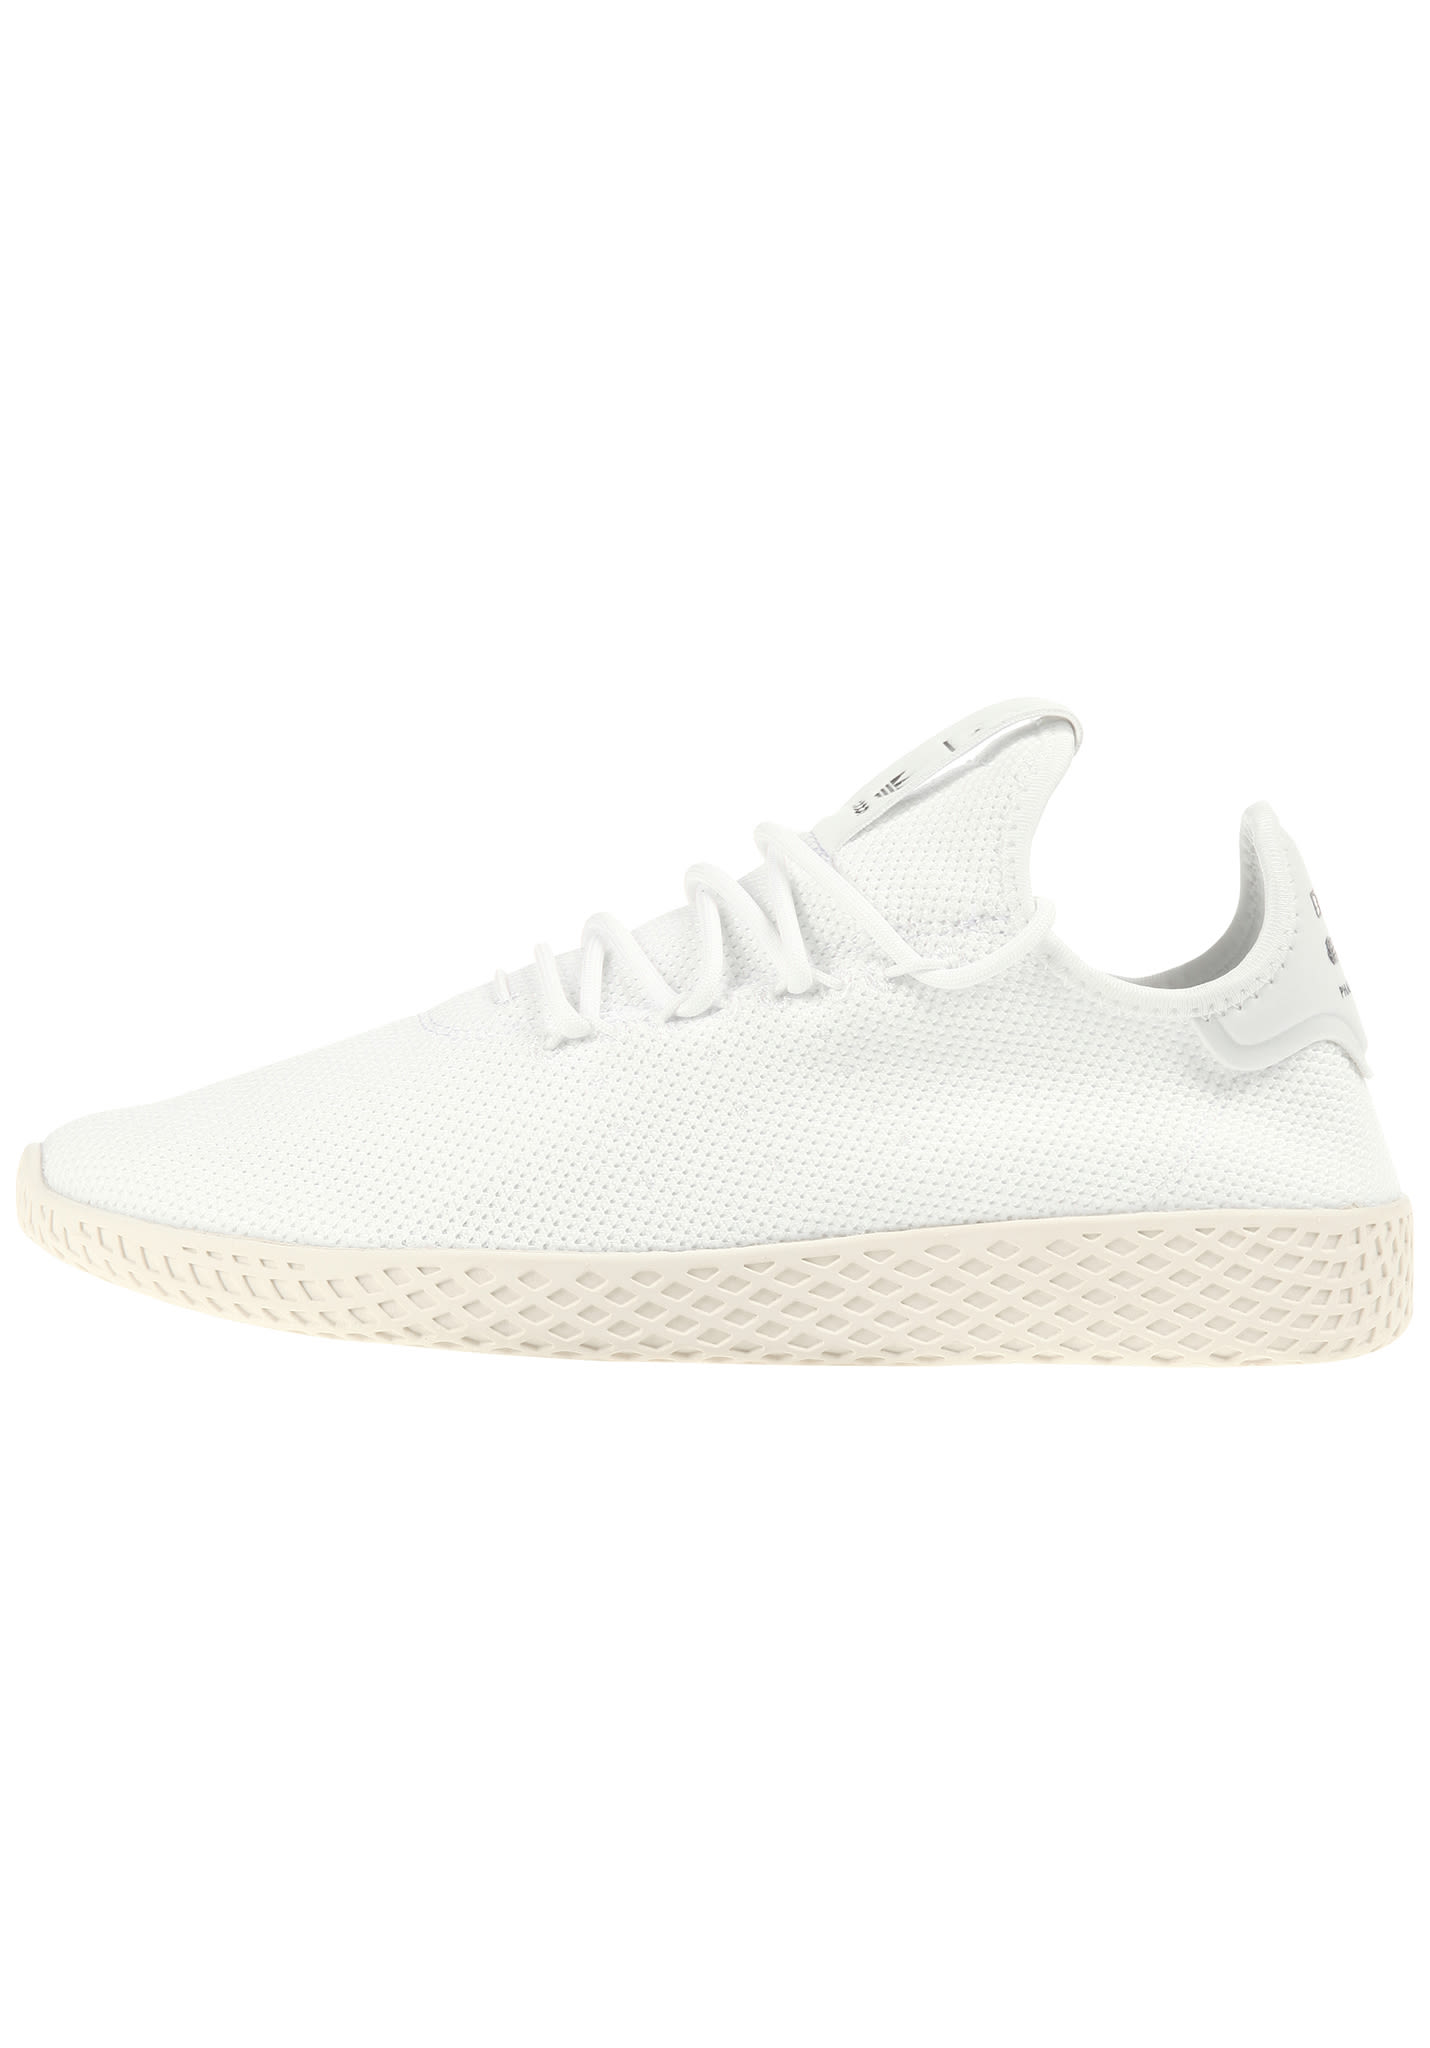 Adidas Originals By Pharrell Williams Tennis Hu Sneakers